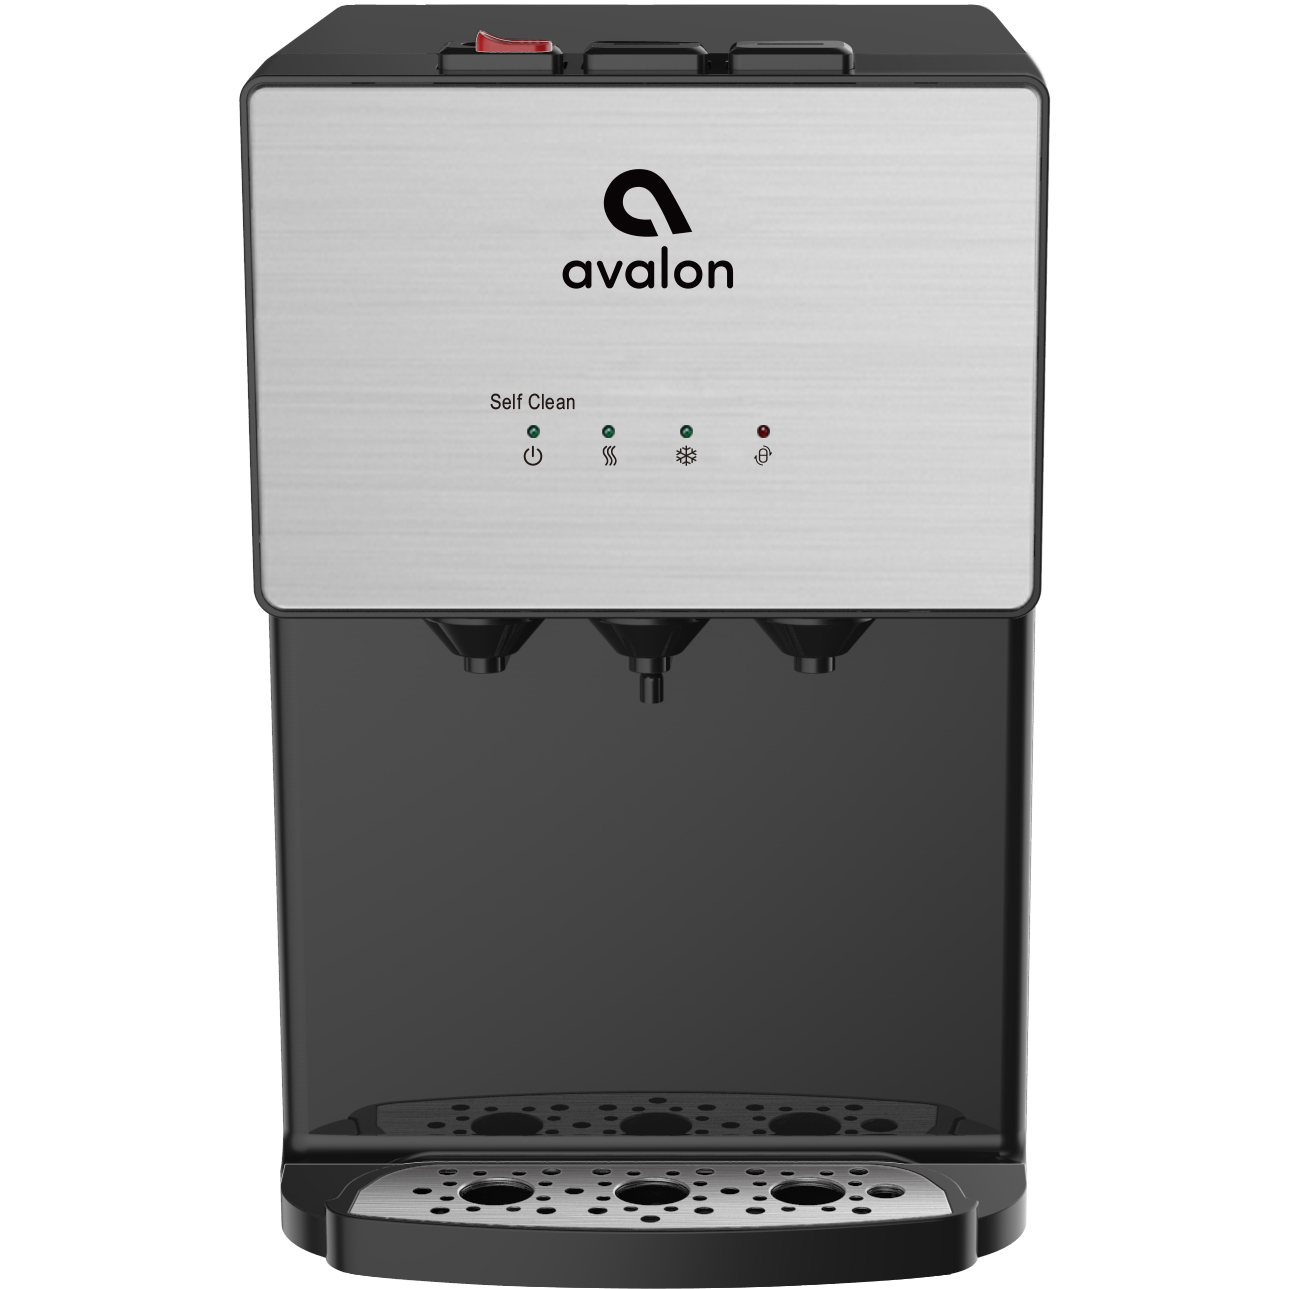 Avalon A12 Self Cleaning Countertop Bottleless Water Cooler Dispenser, 3 Temperatures, UL/Energy Star- Stainless Steel